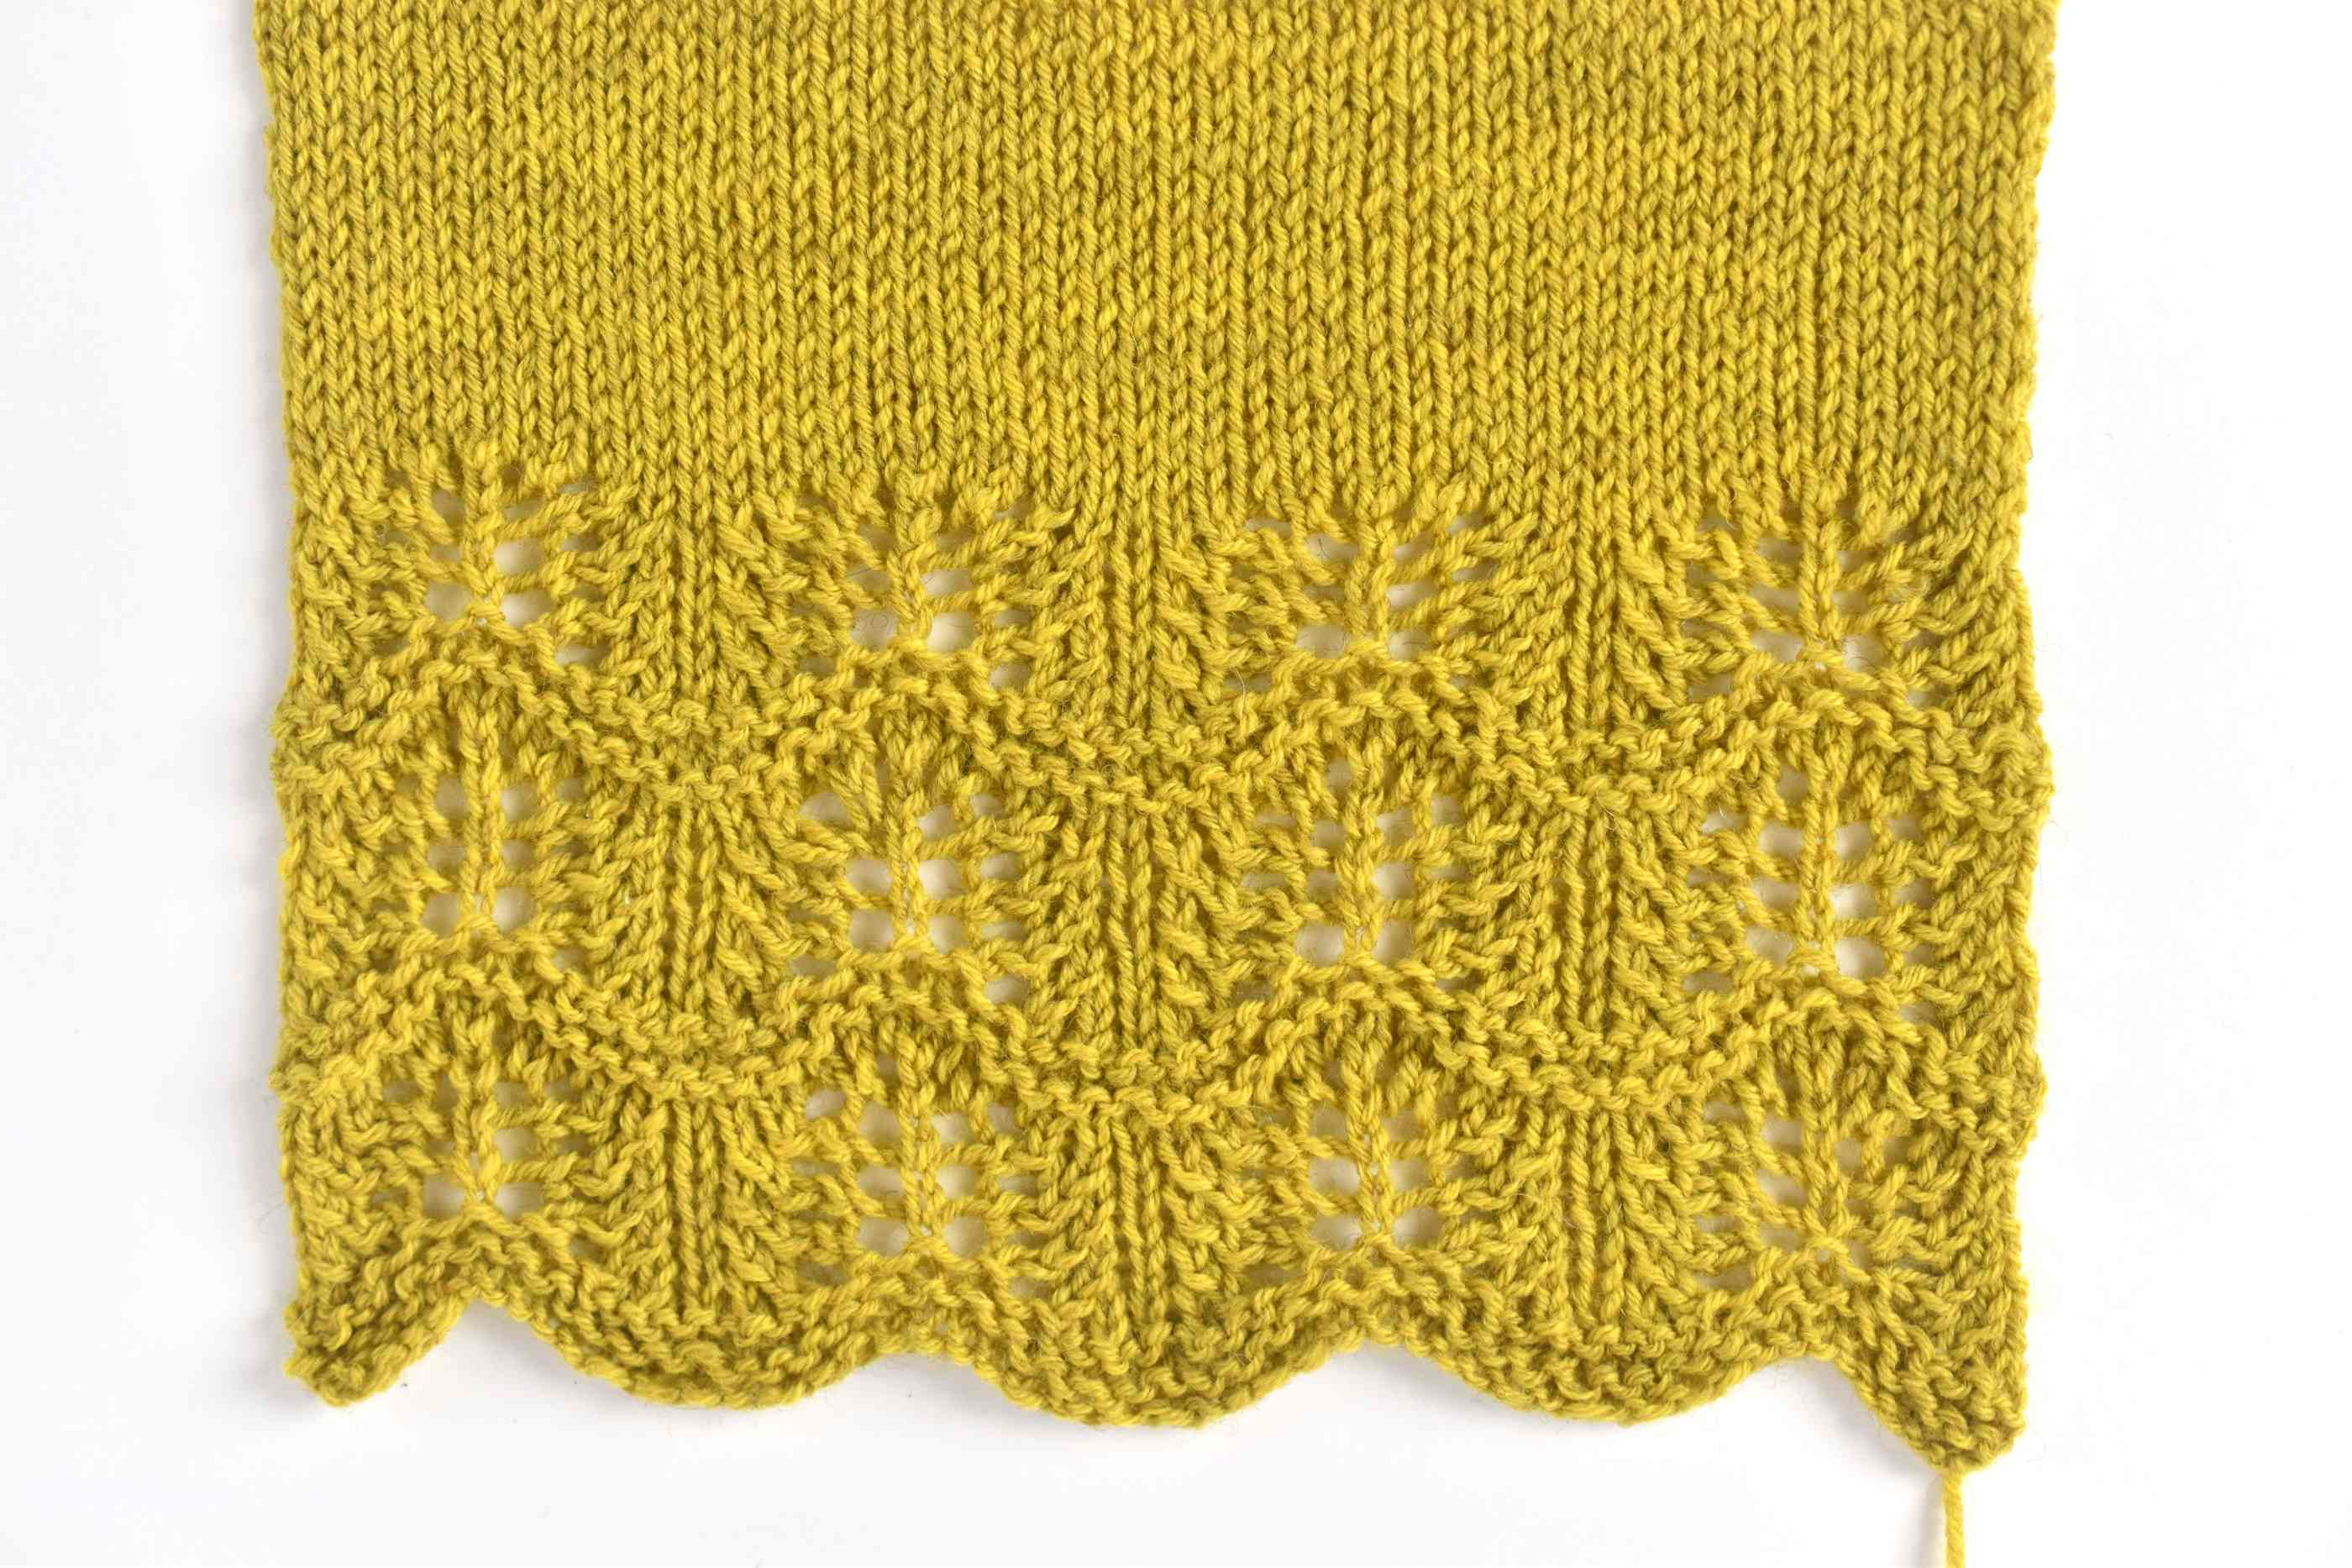 Graceful Waves Knitting Swatch